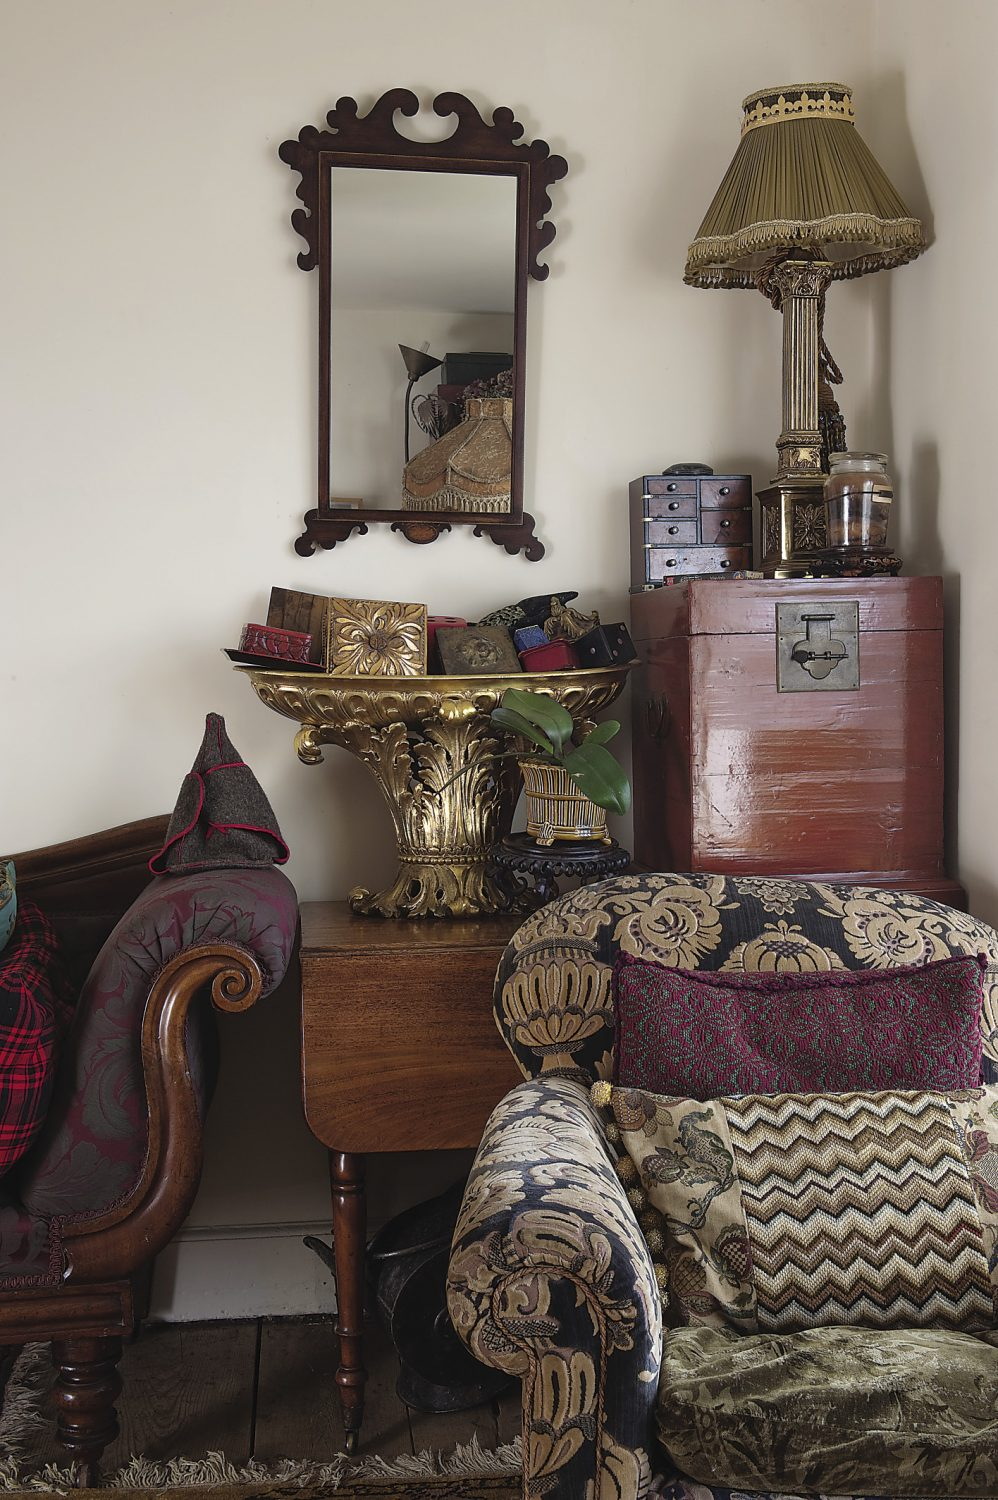 the carved mahogany sofa came from Helen's aunt Lucy and is upholstered in rich burgundy brocade